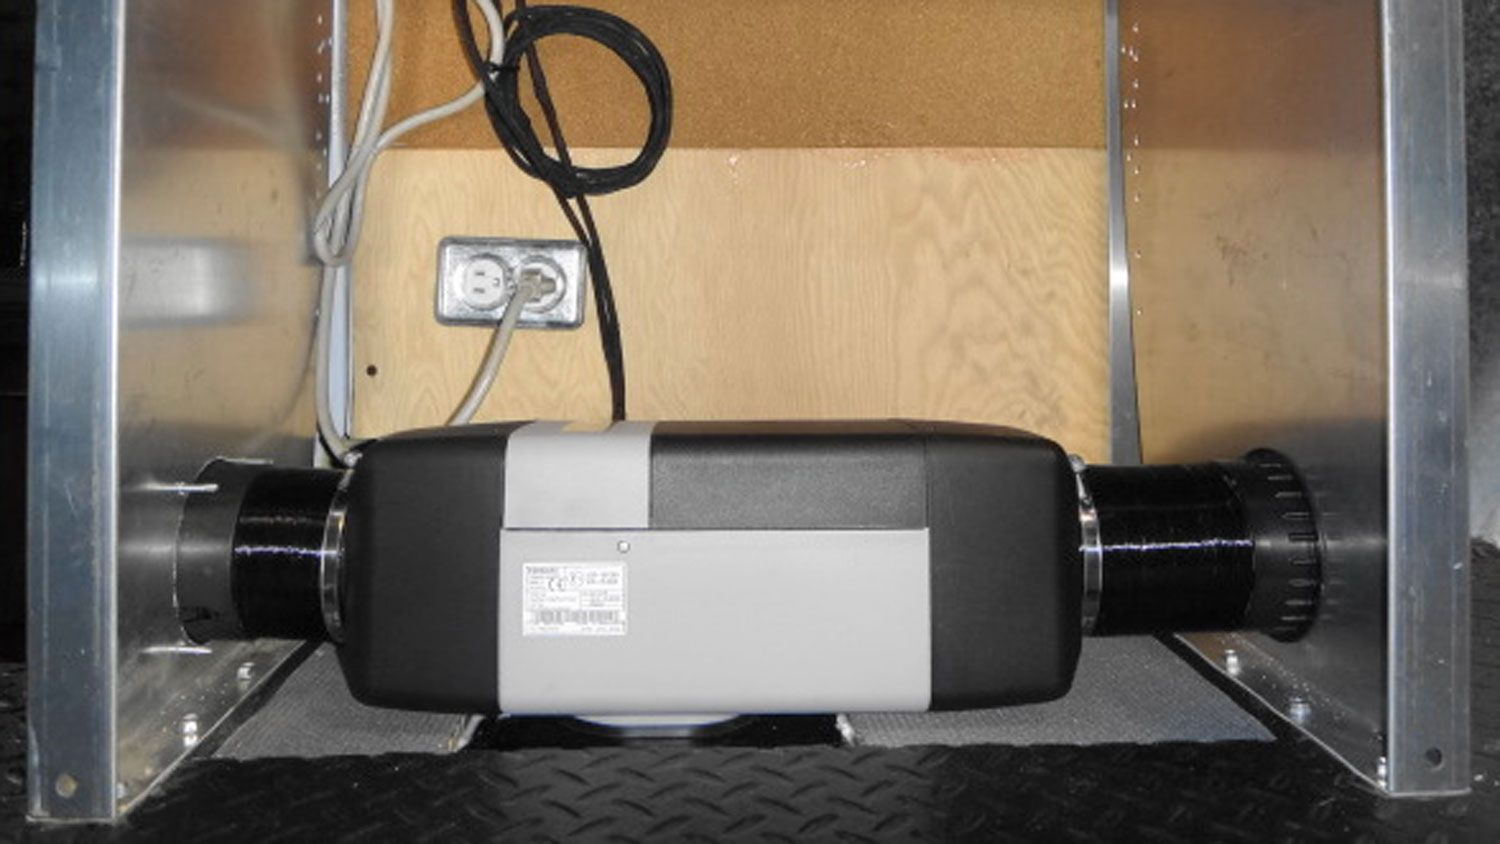 Ram Promaster Rear Cargo Hvac Systems For Heating Cooling Hvac System Hvac Installing Insulation